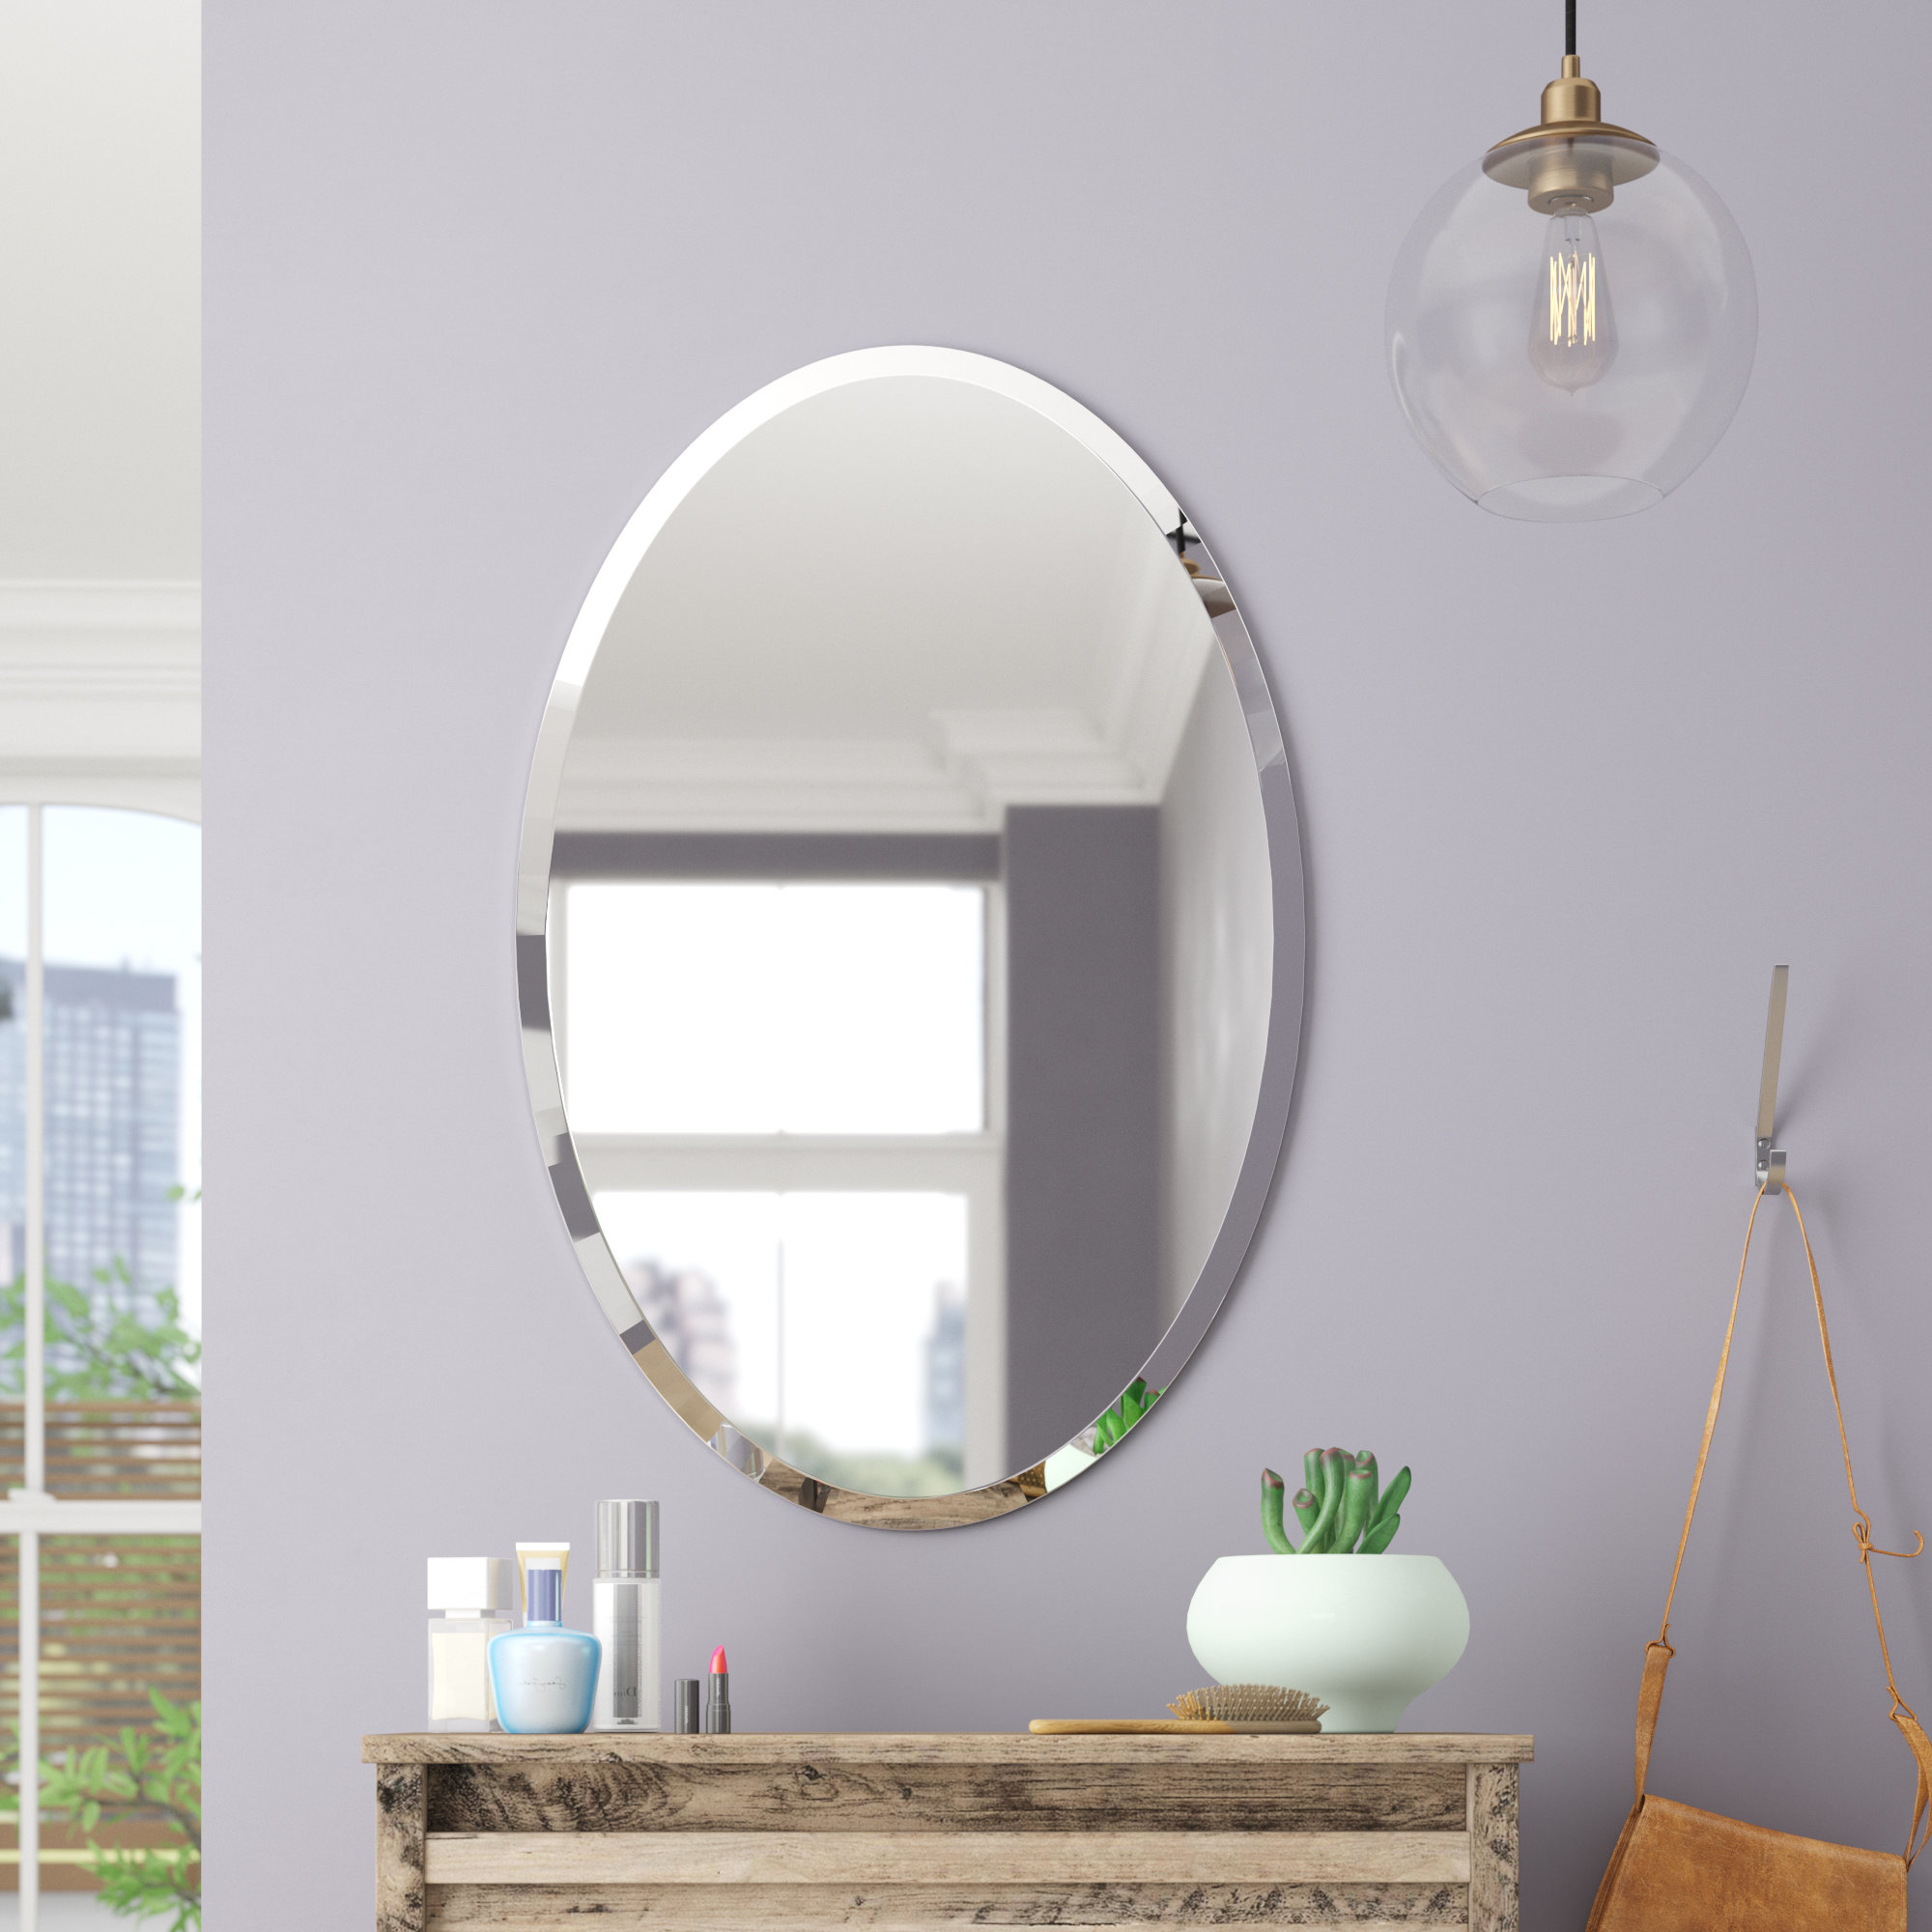 Recent Gorgeous Long Glass Wall Mirror Bevelled Silver Mirrored Decor Large Intended For Large Glass Bevelled Wall Mirrors (View 13 of 20)